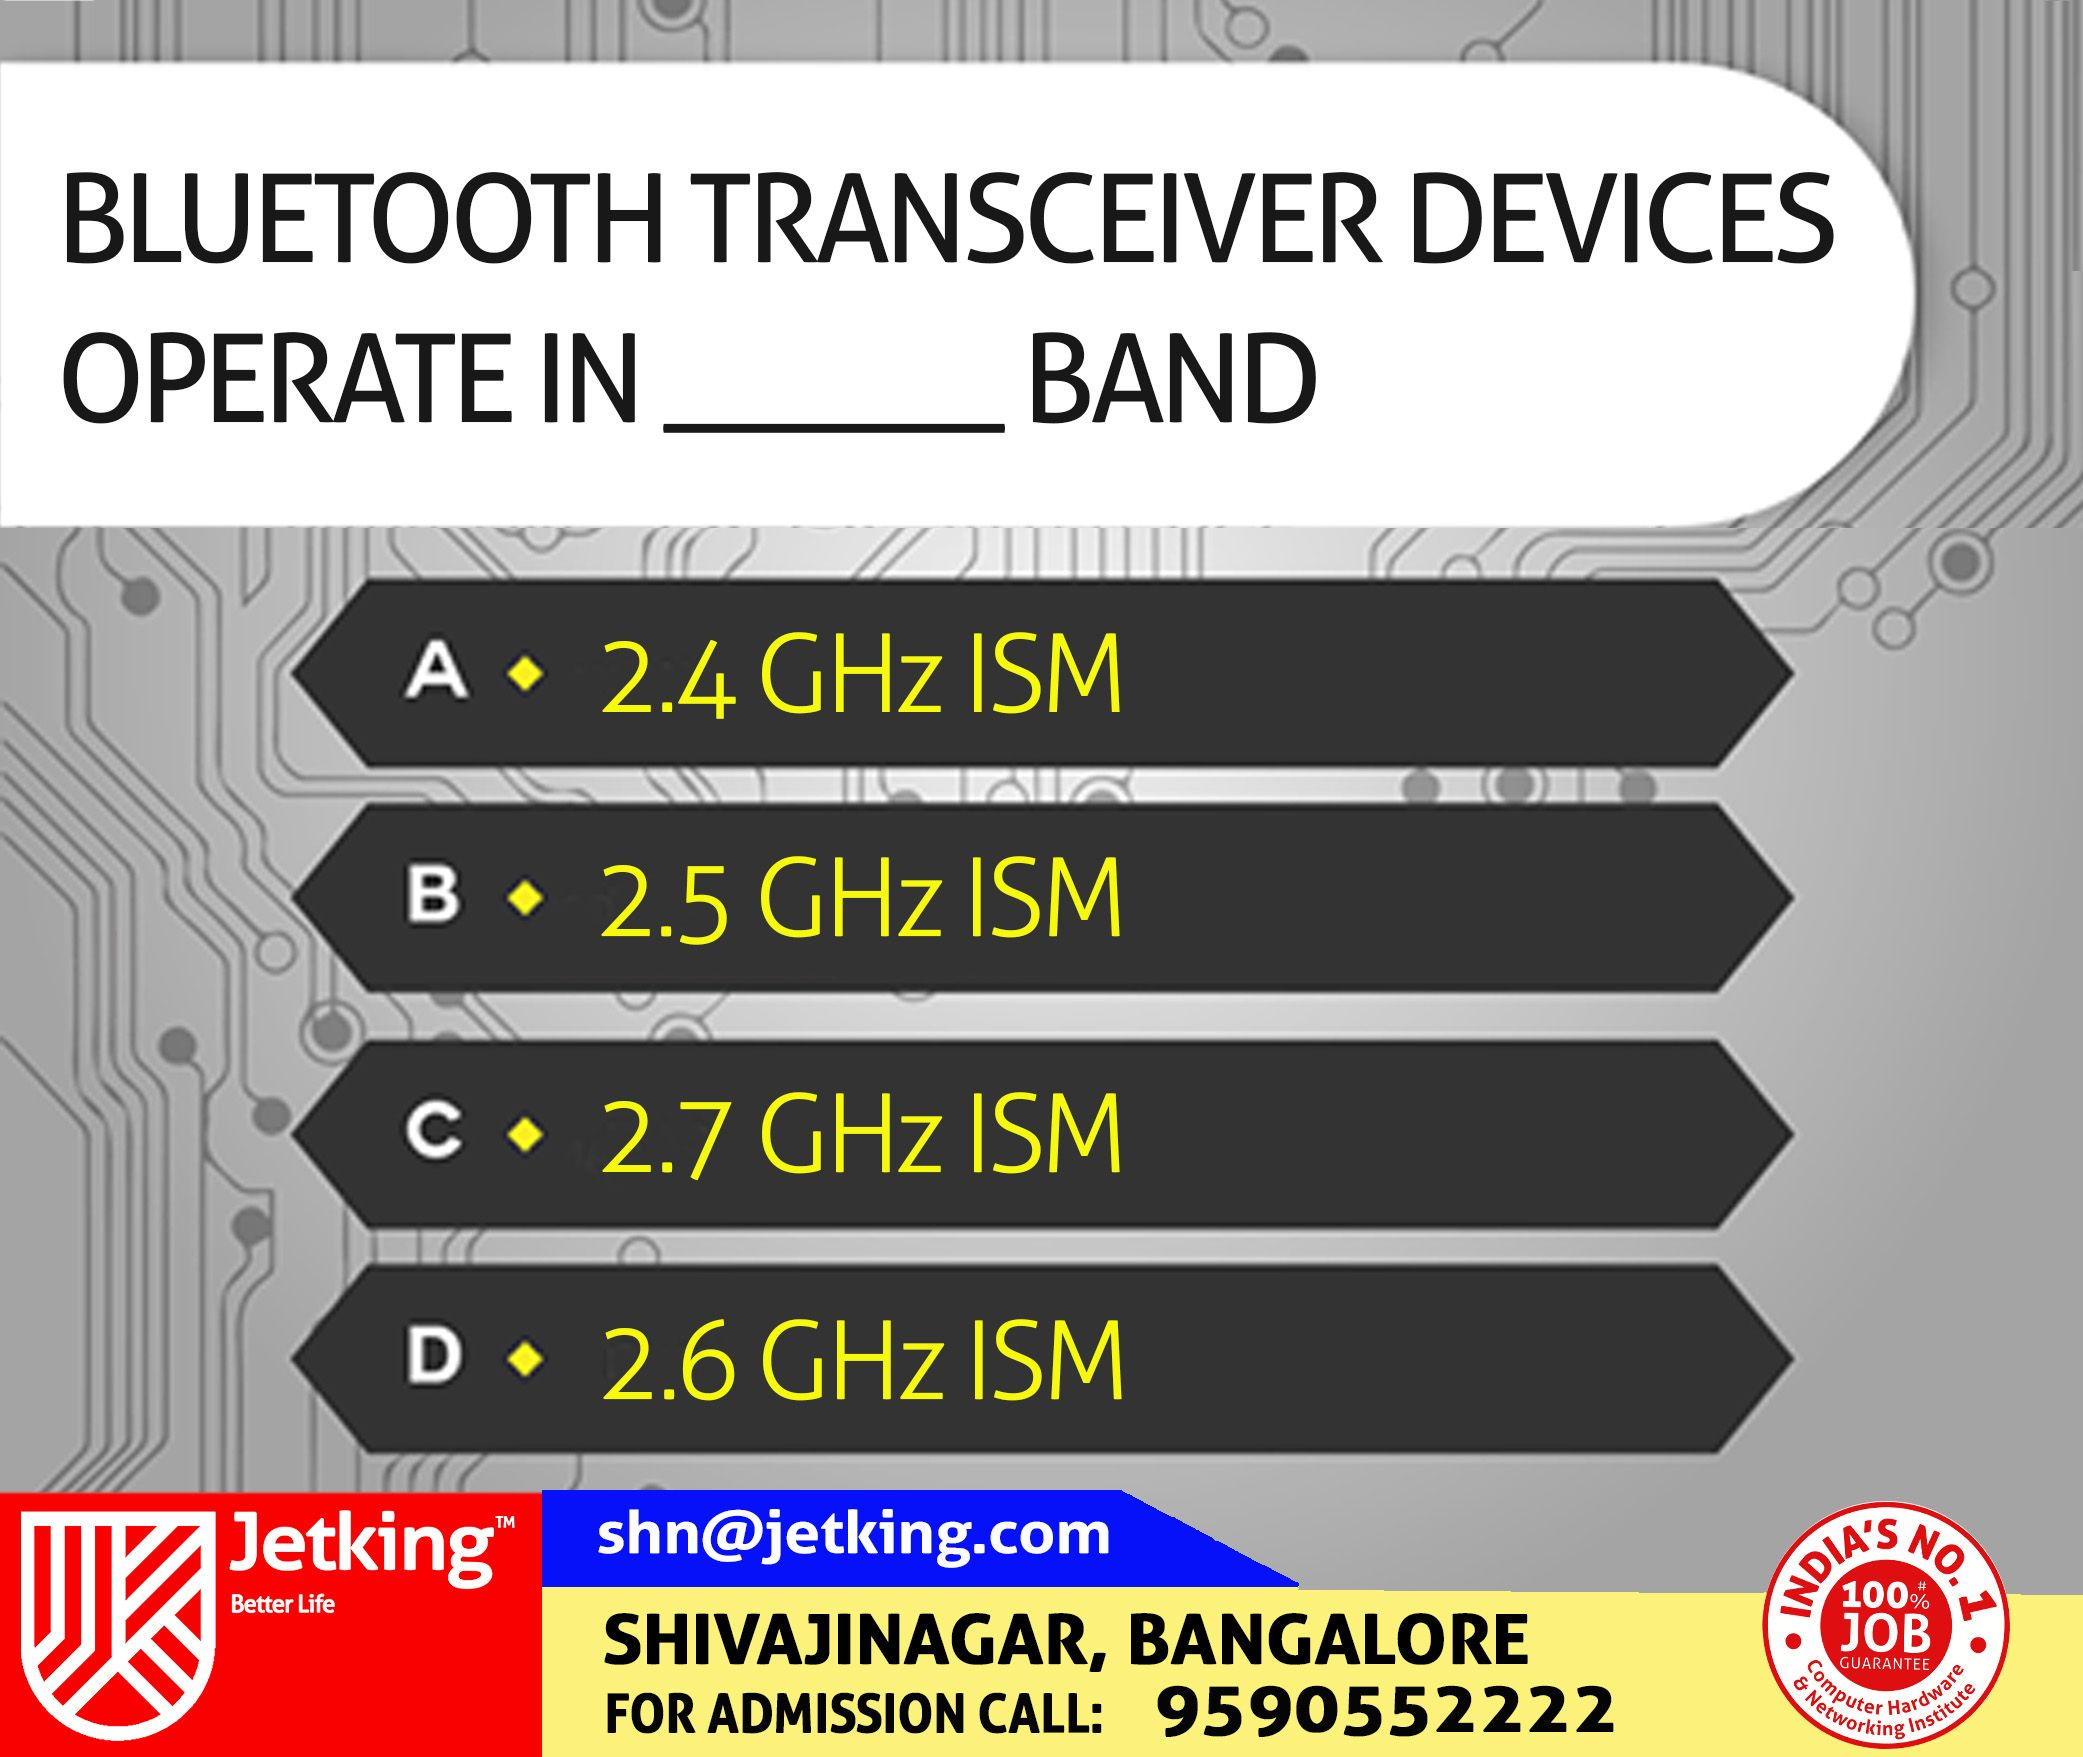 #Bluetooth #transceiver #devices #operate in ______ #band. #Quiz #Jetking #Shivajinagar